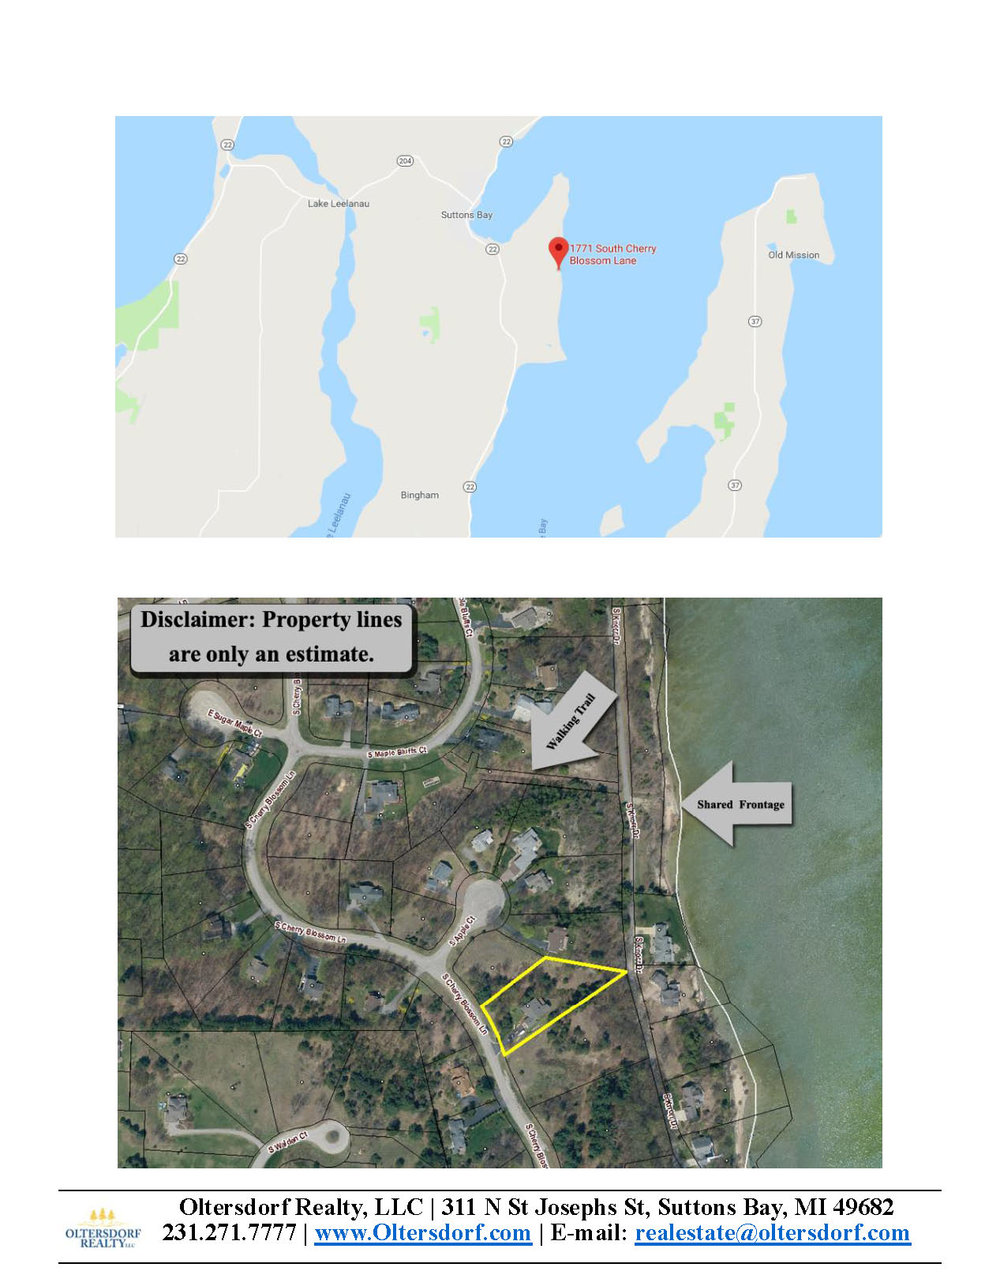 1771 S Cherry Blossom Lane, Suttons Bay Marketing Packet - Real Estate for sale by oltersdorf realty llc_Page_09.jpg